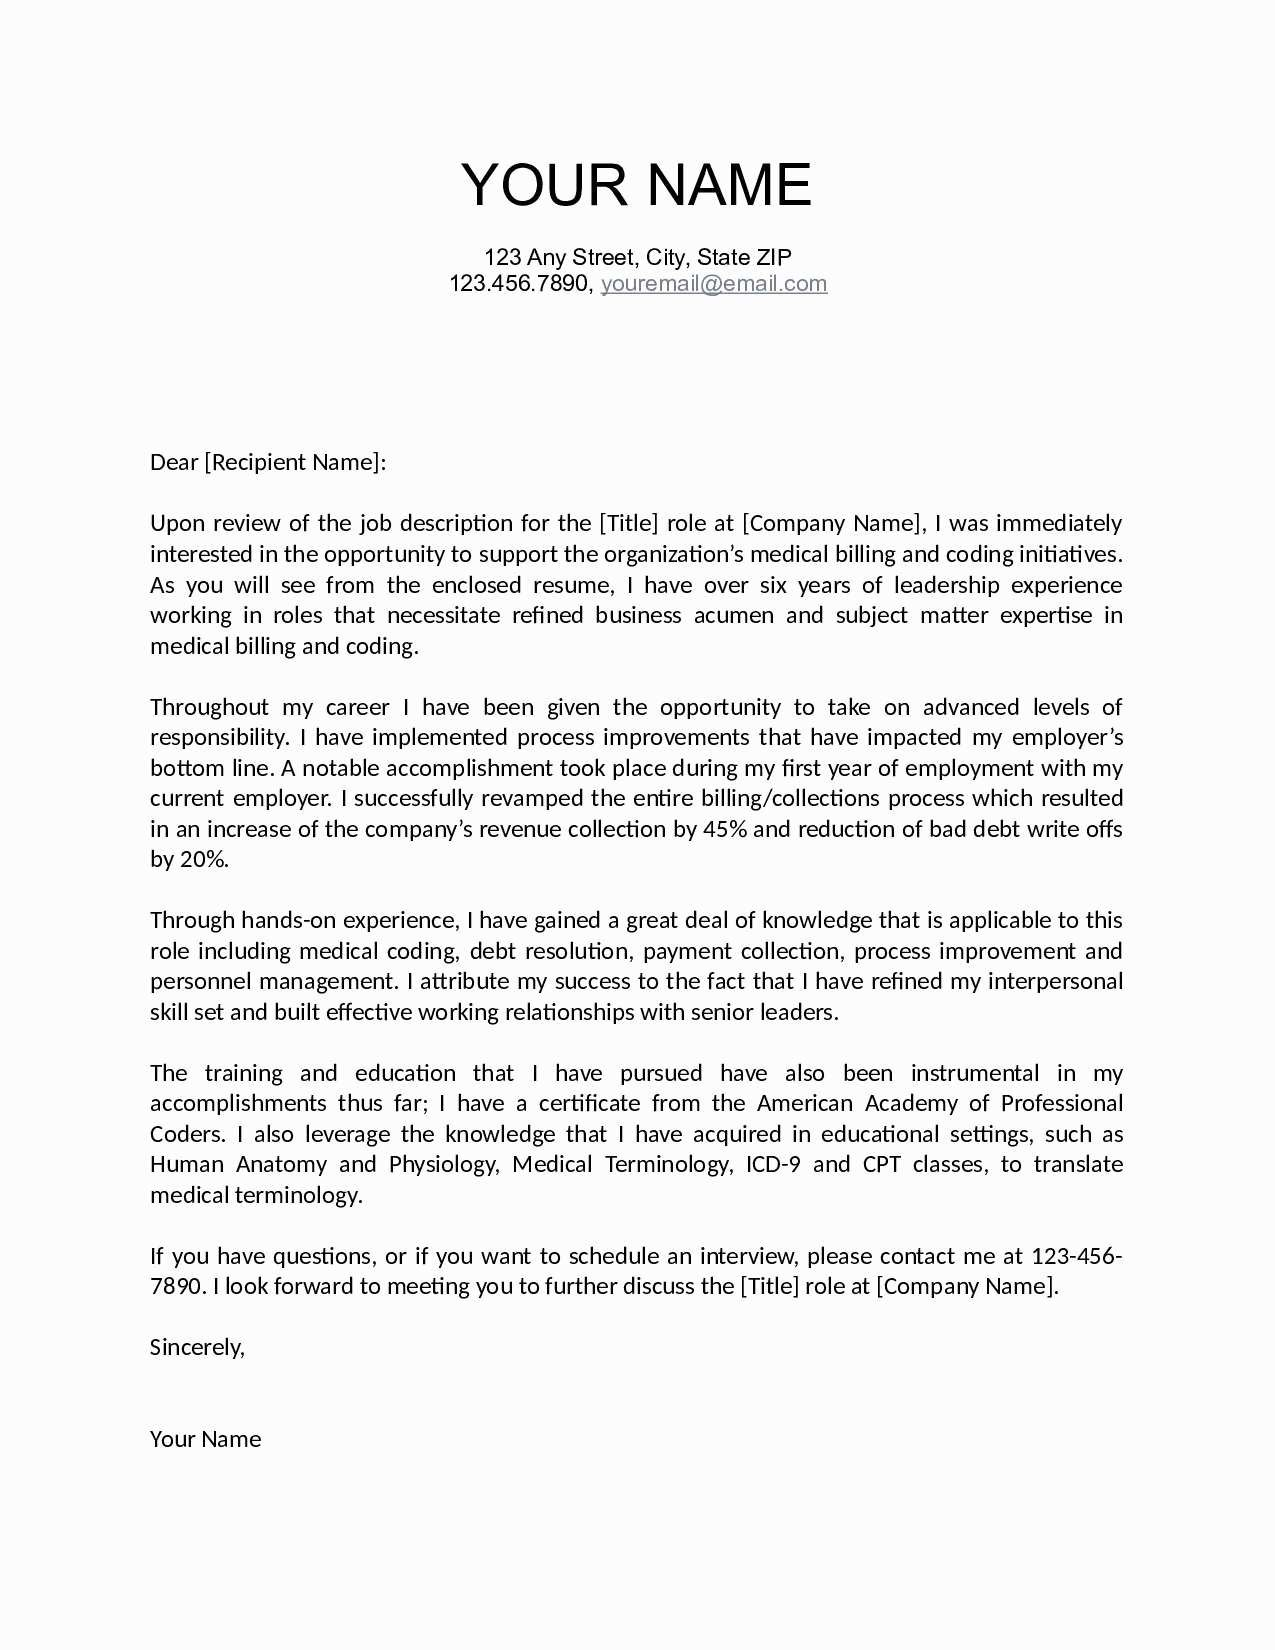 Formal Cover Letter Template - formal Application Letter for A Job New Job Fer Letter Template Us